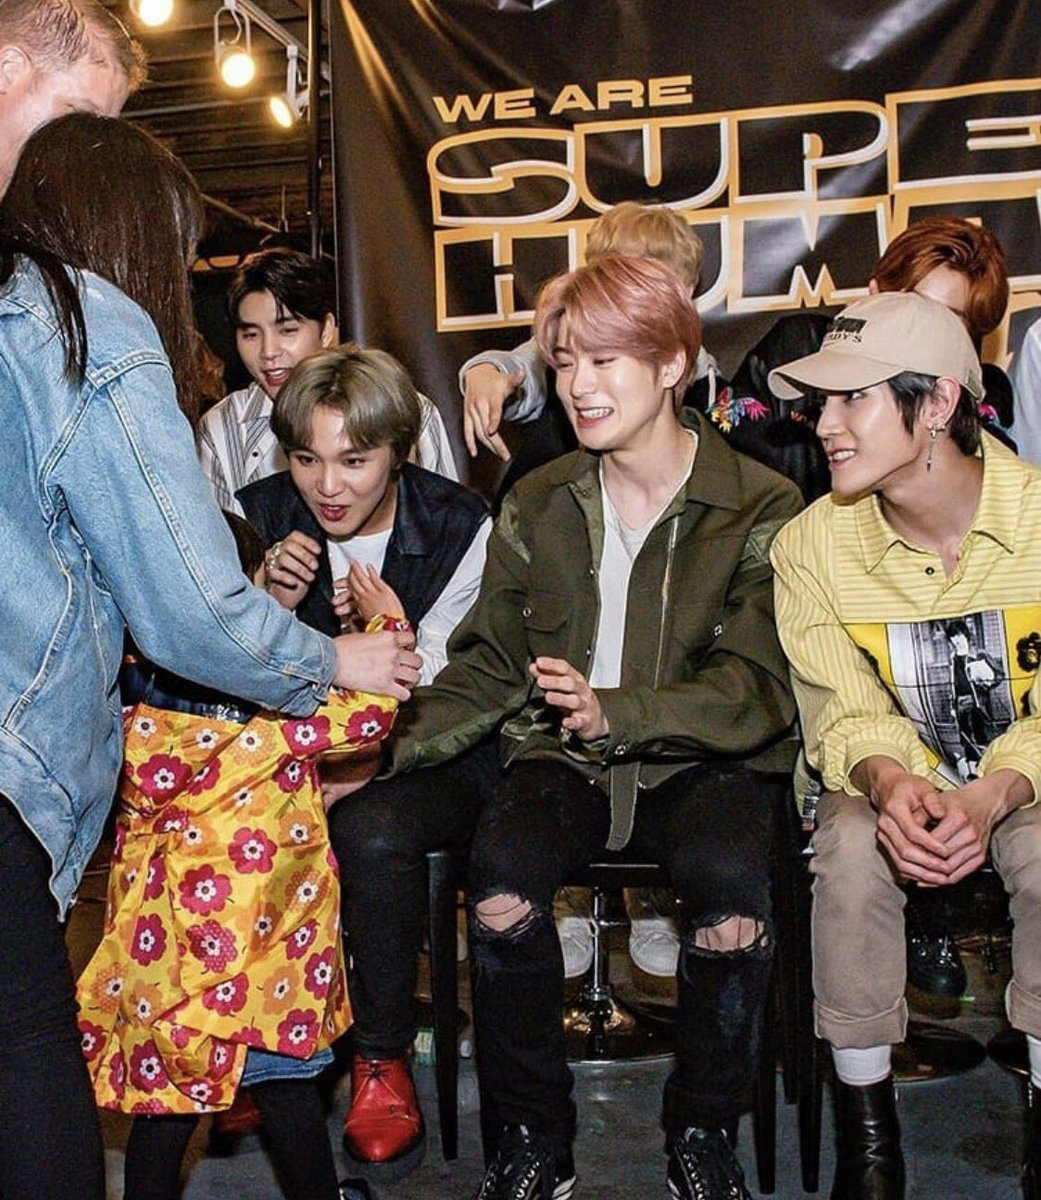 190422 ♡ NCT 127 Fanmeet  Still can&#39;t get over Jaehyun preciously smiling at the cute little girl!  <br>http://pic.twitter.com/8bA9BjbL8E